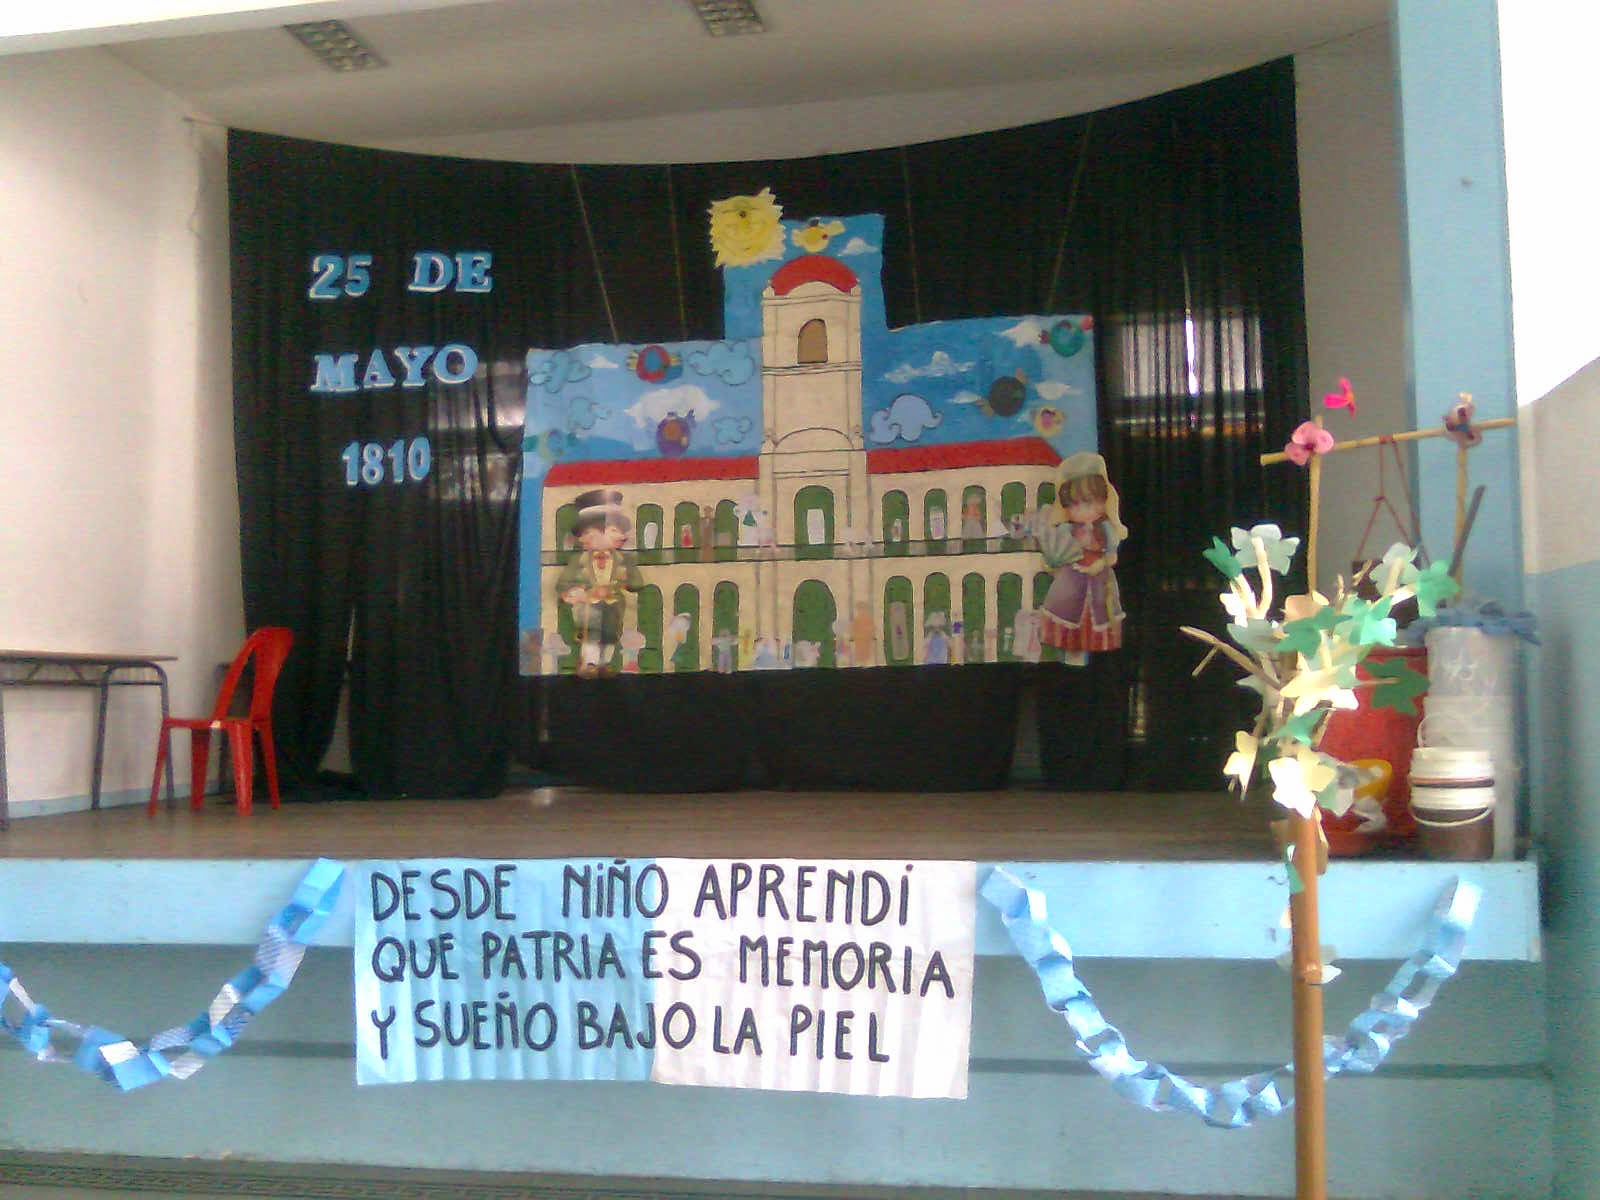 25 de mayo decoracion en nivel inicial biblioteca quot for Decoracion 25 de mayo nivel inicial